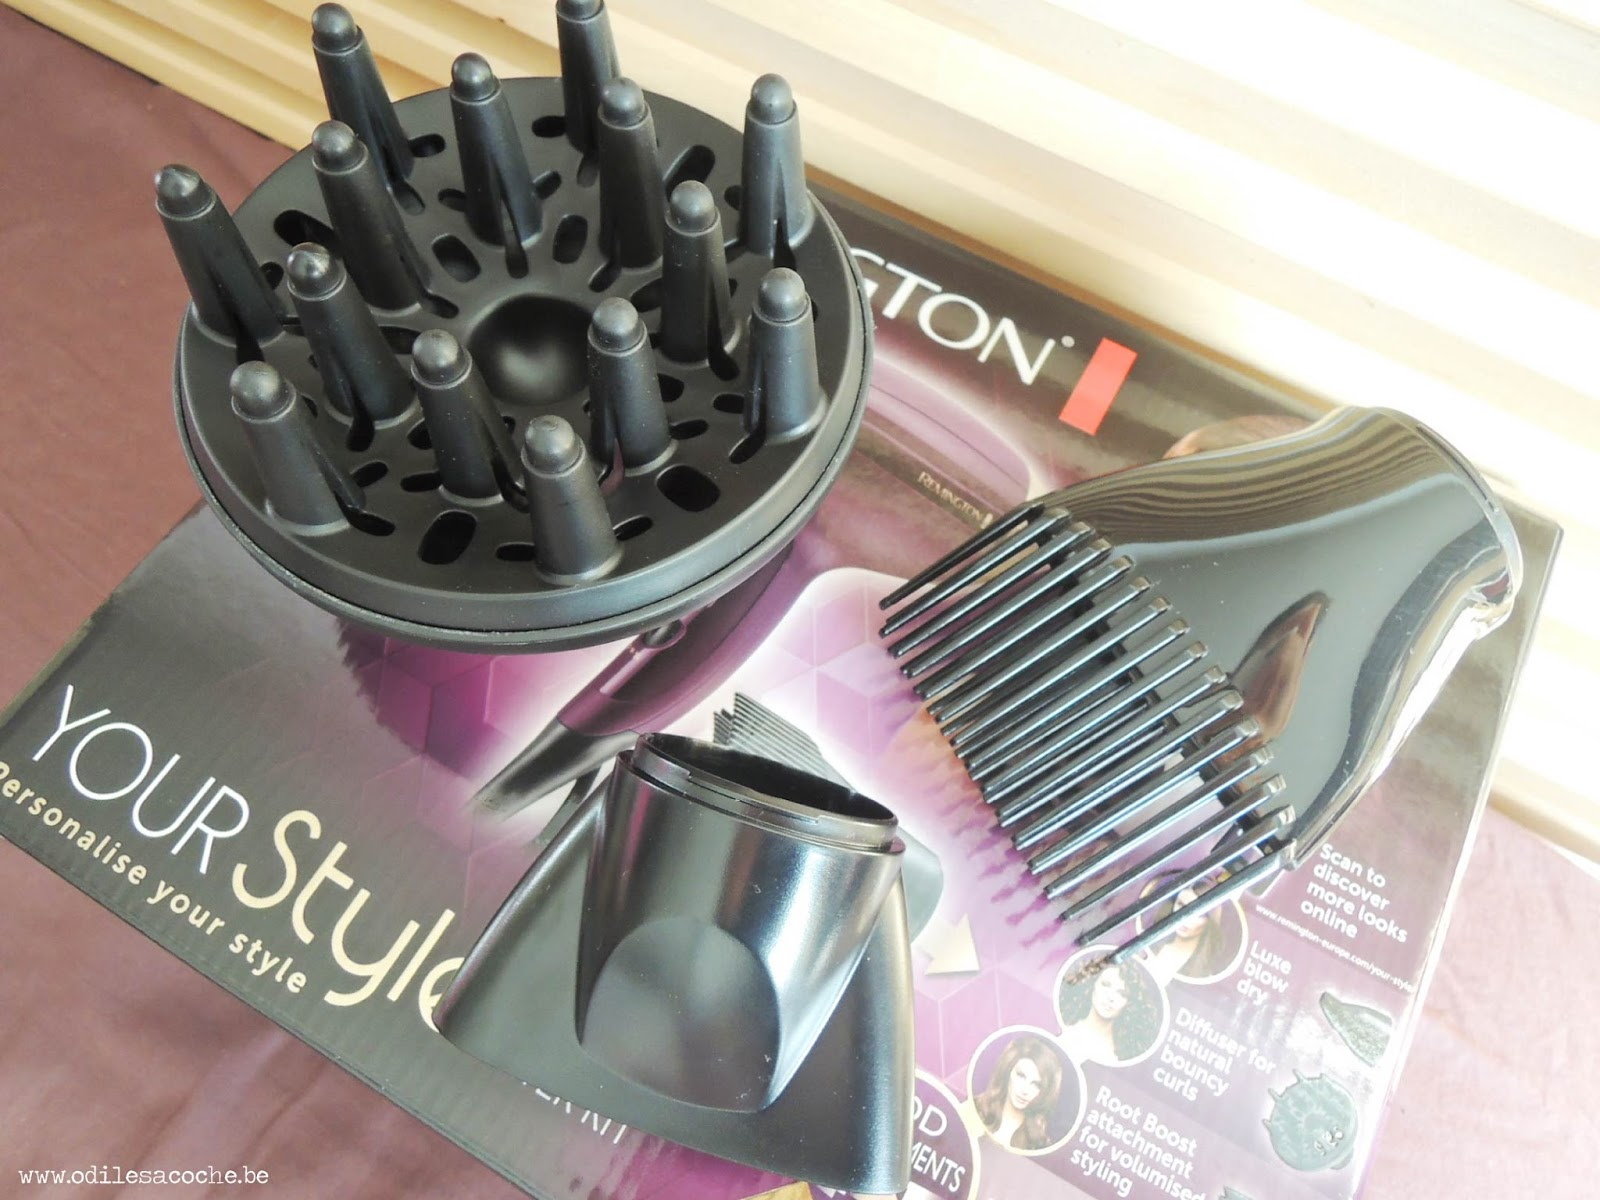 remington dryer kit